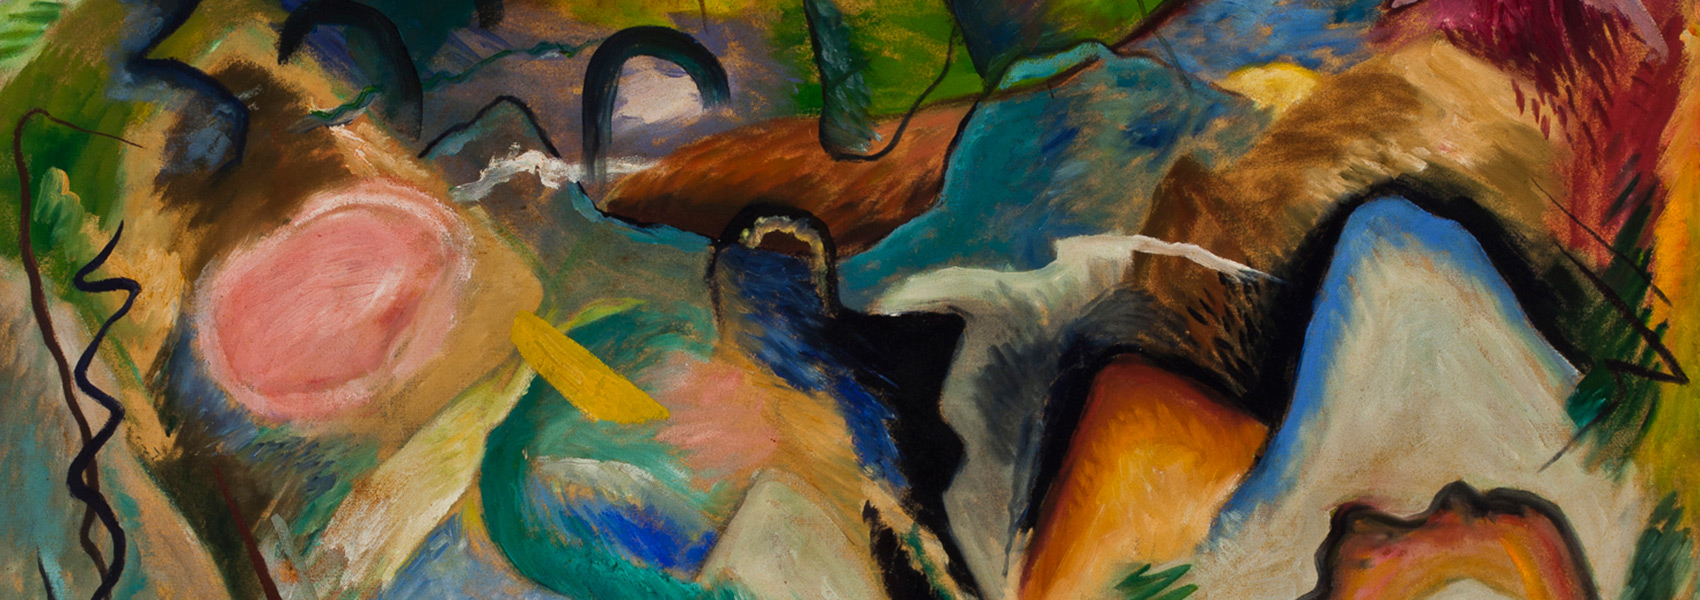 Attributed to Wassily Kandinsky, Composition (detail), 1914